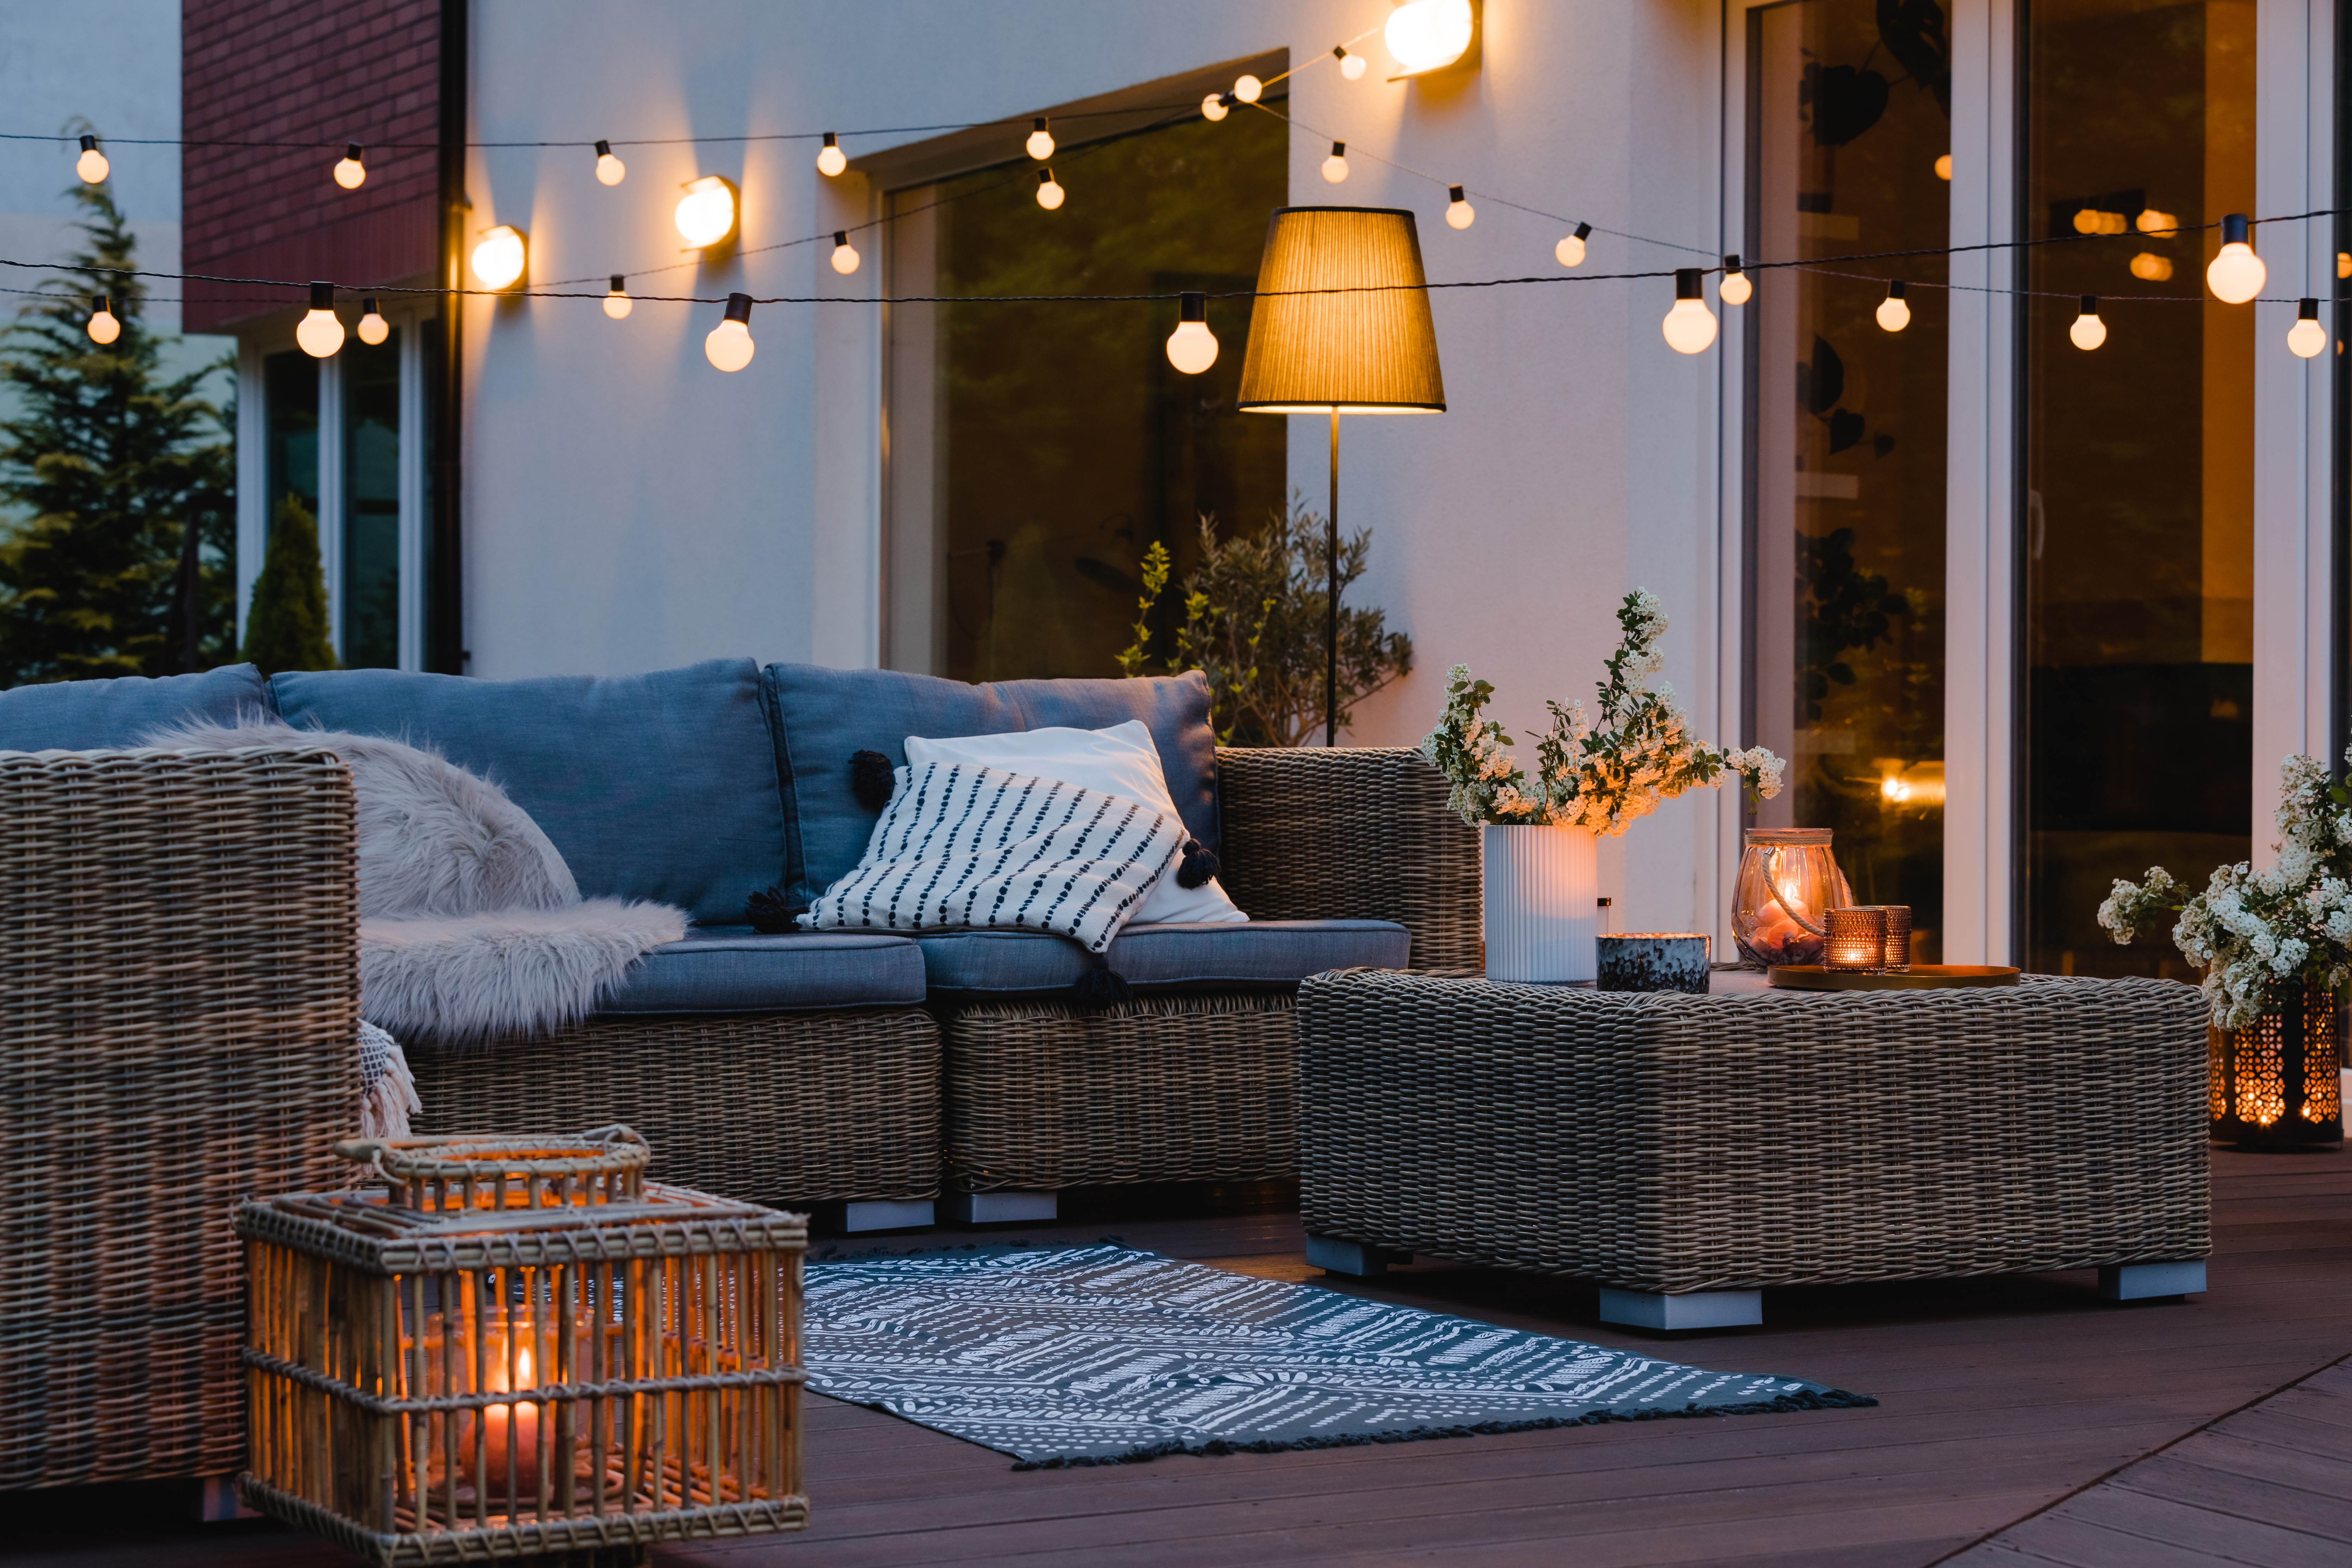 Summer,Evening,On,The,Patio,Of,Beautiful,Suburban,House,With